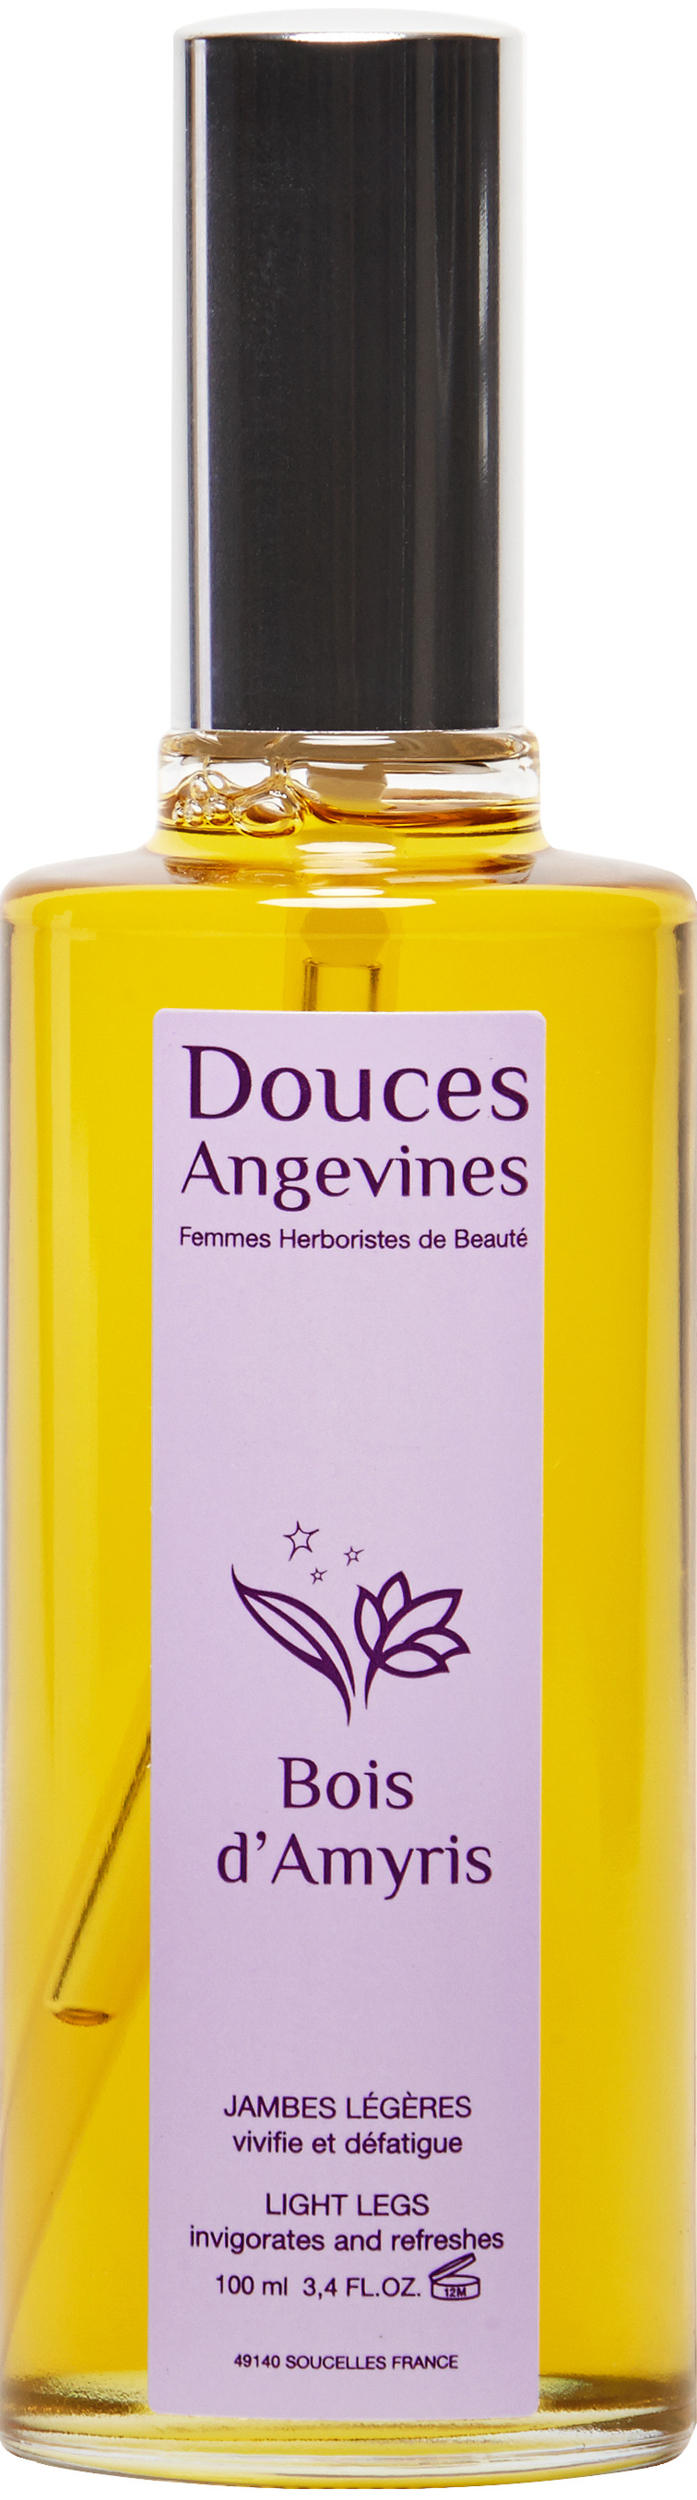 Doux Good - Douces Angevines - Bois d'Amyris